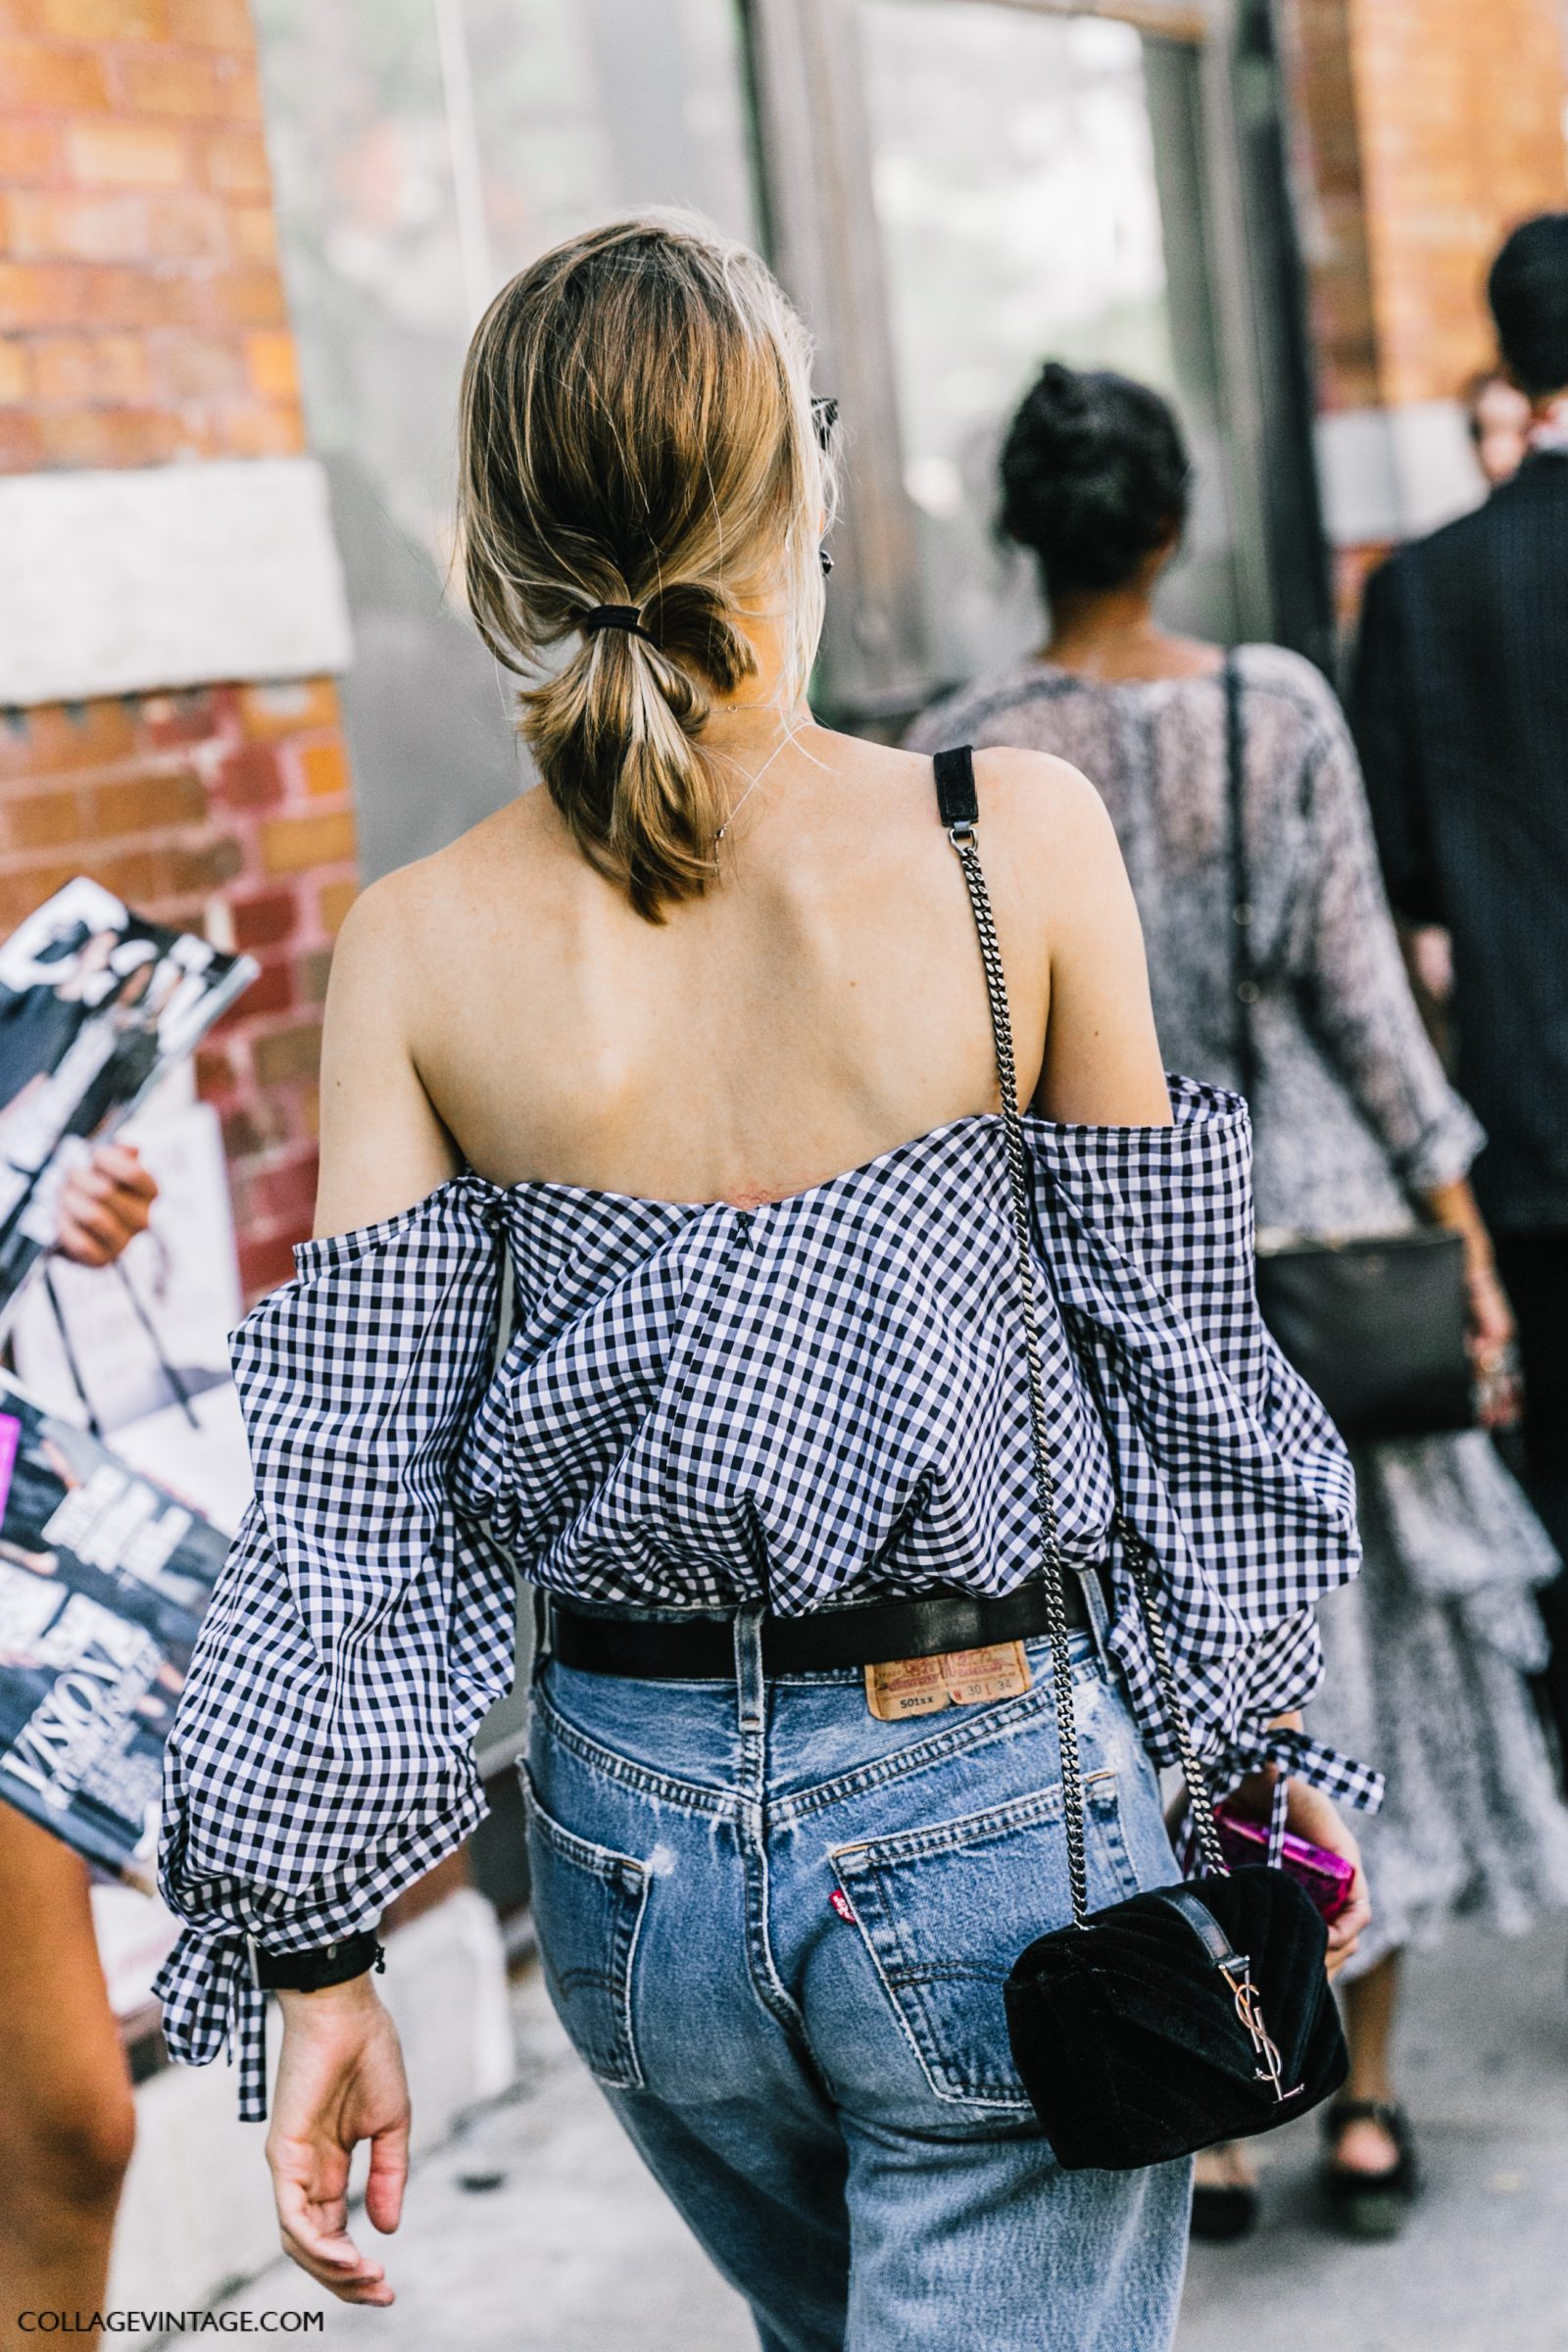 nyfw-new_york_fashion_week_ss17-street_style-outfits-collage_vintage-vintage-mansur_gavriel-rodarte-coach-61